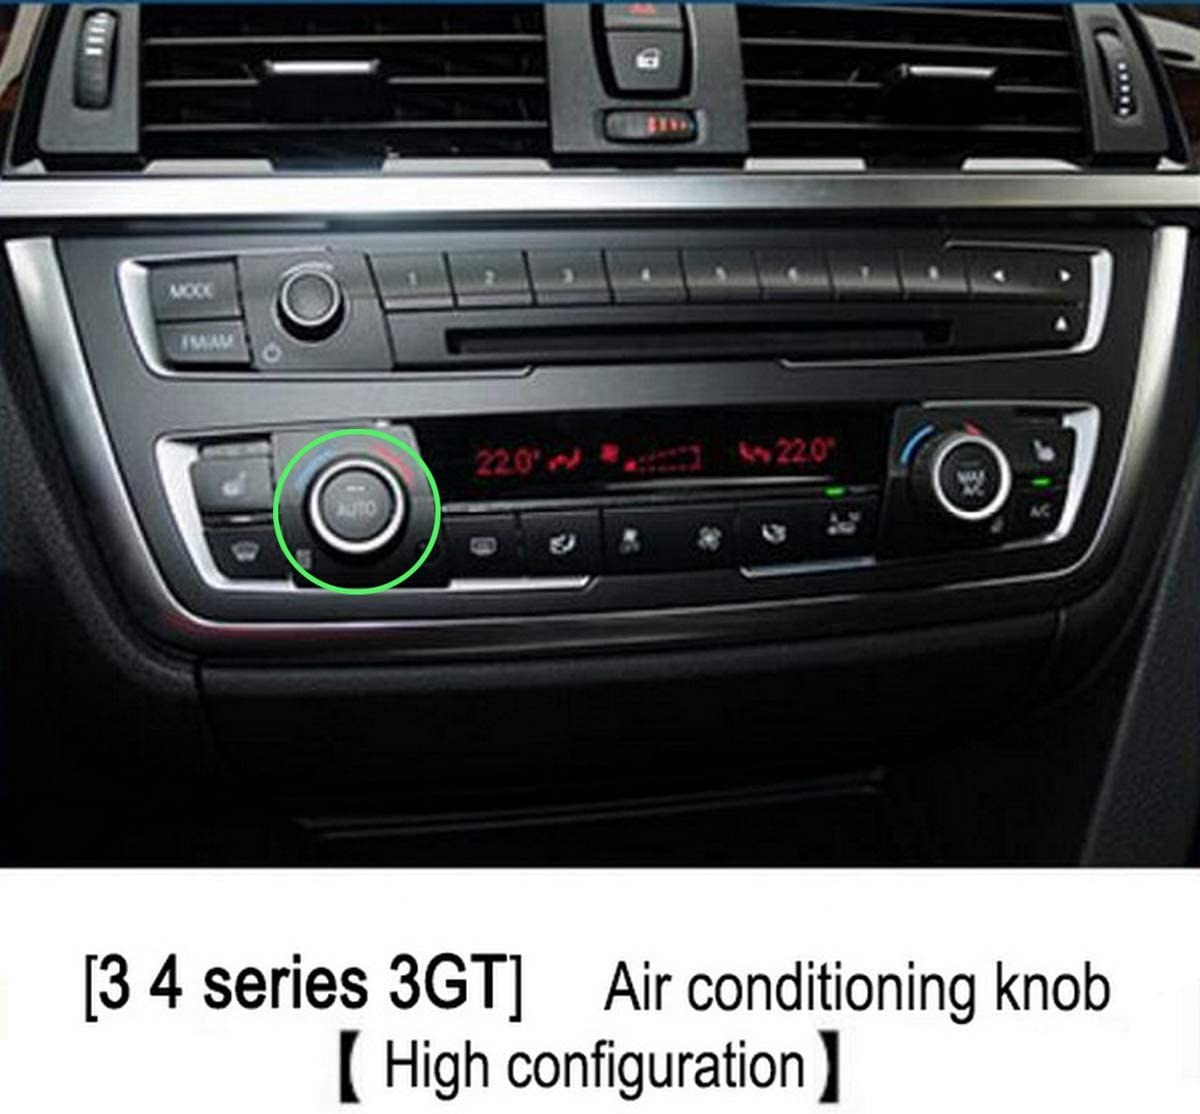 GOFORJUMP Blue Aluminum Car Air Conditioning Switch Control Knobs Trim Ring Cover Decoration Car-styling For B//MW 1//2//3//4 Series 3GT F20 F22 F30 F31 F32 F33 F80 F82 F87